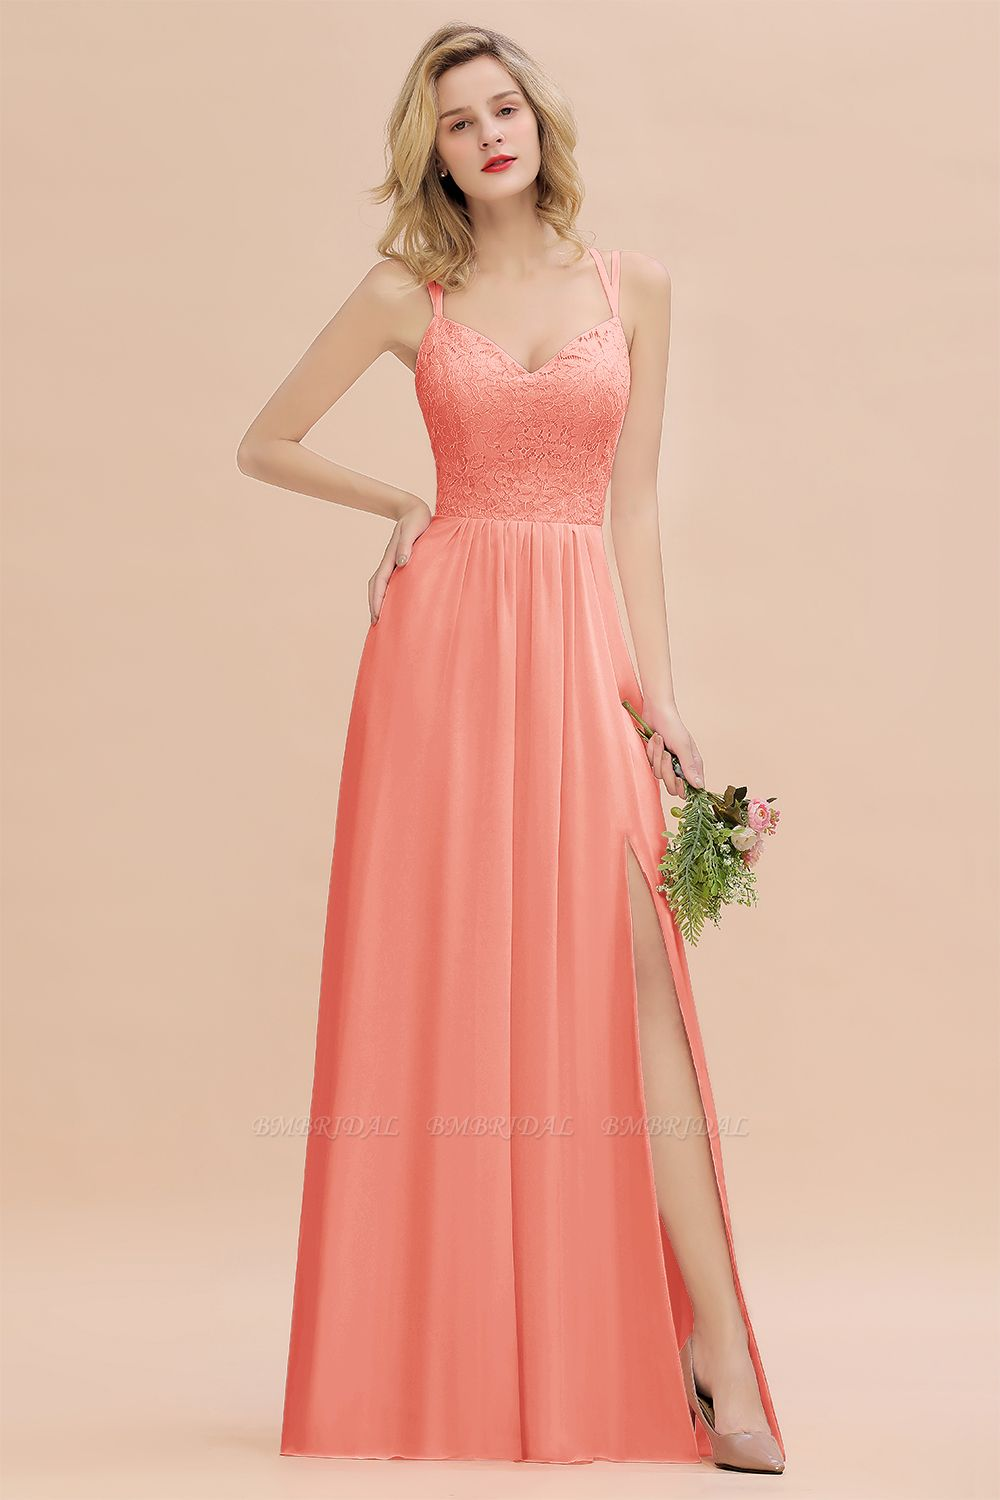 Sexy Spaghetti-Straps Coral Lace Bridesmaid Dresses with Slit